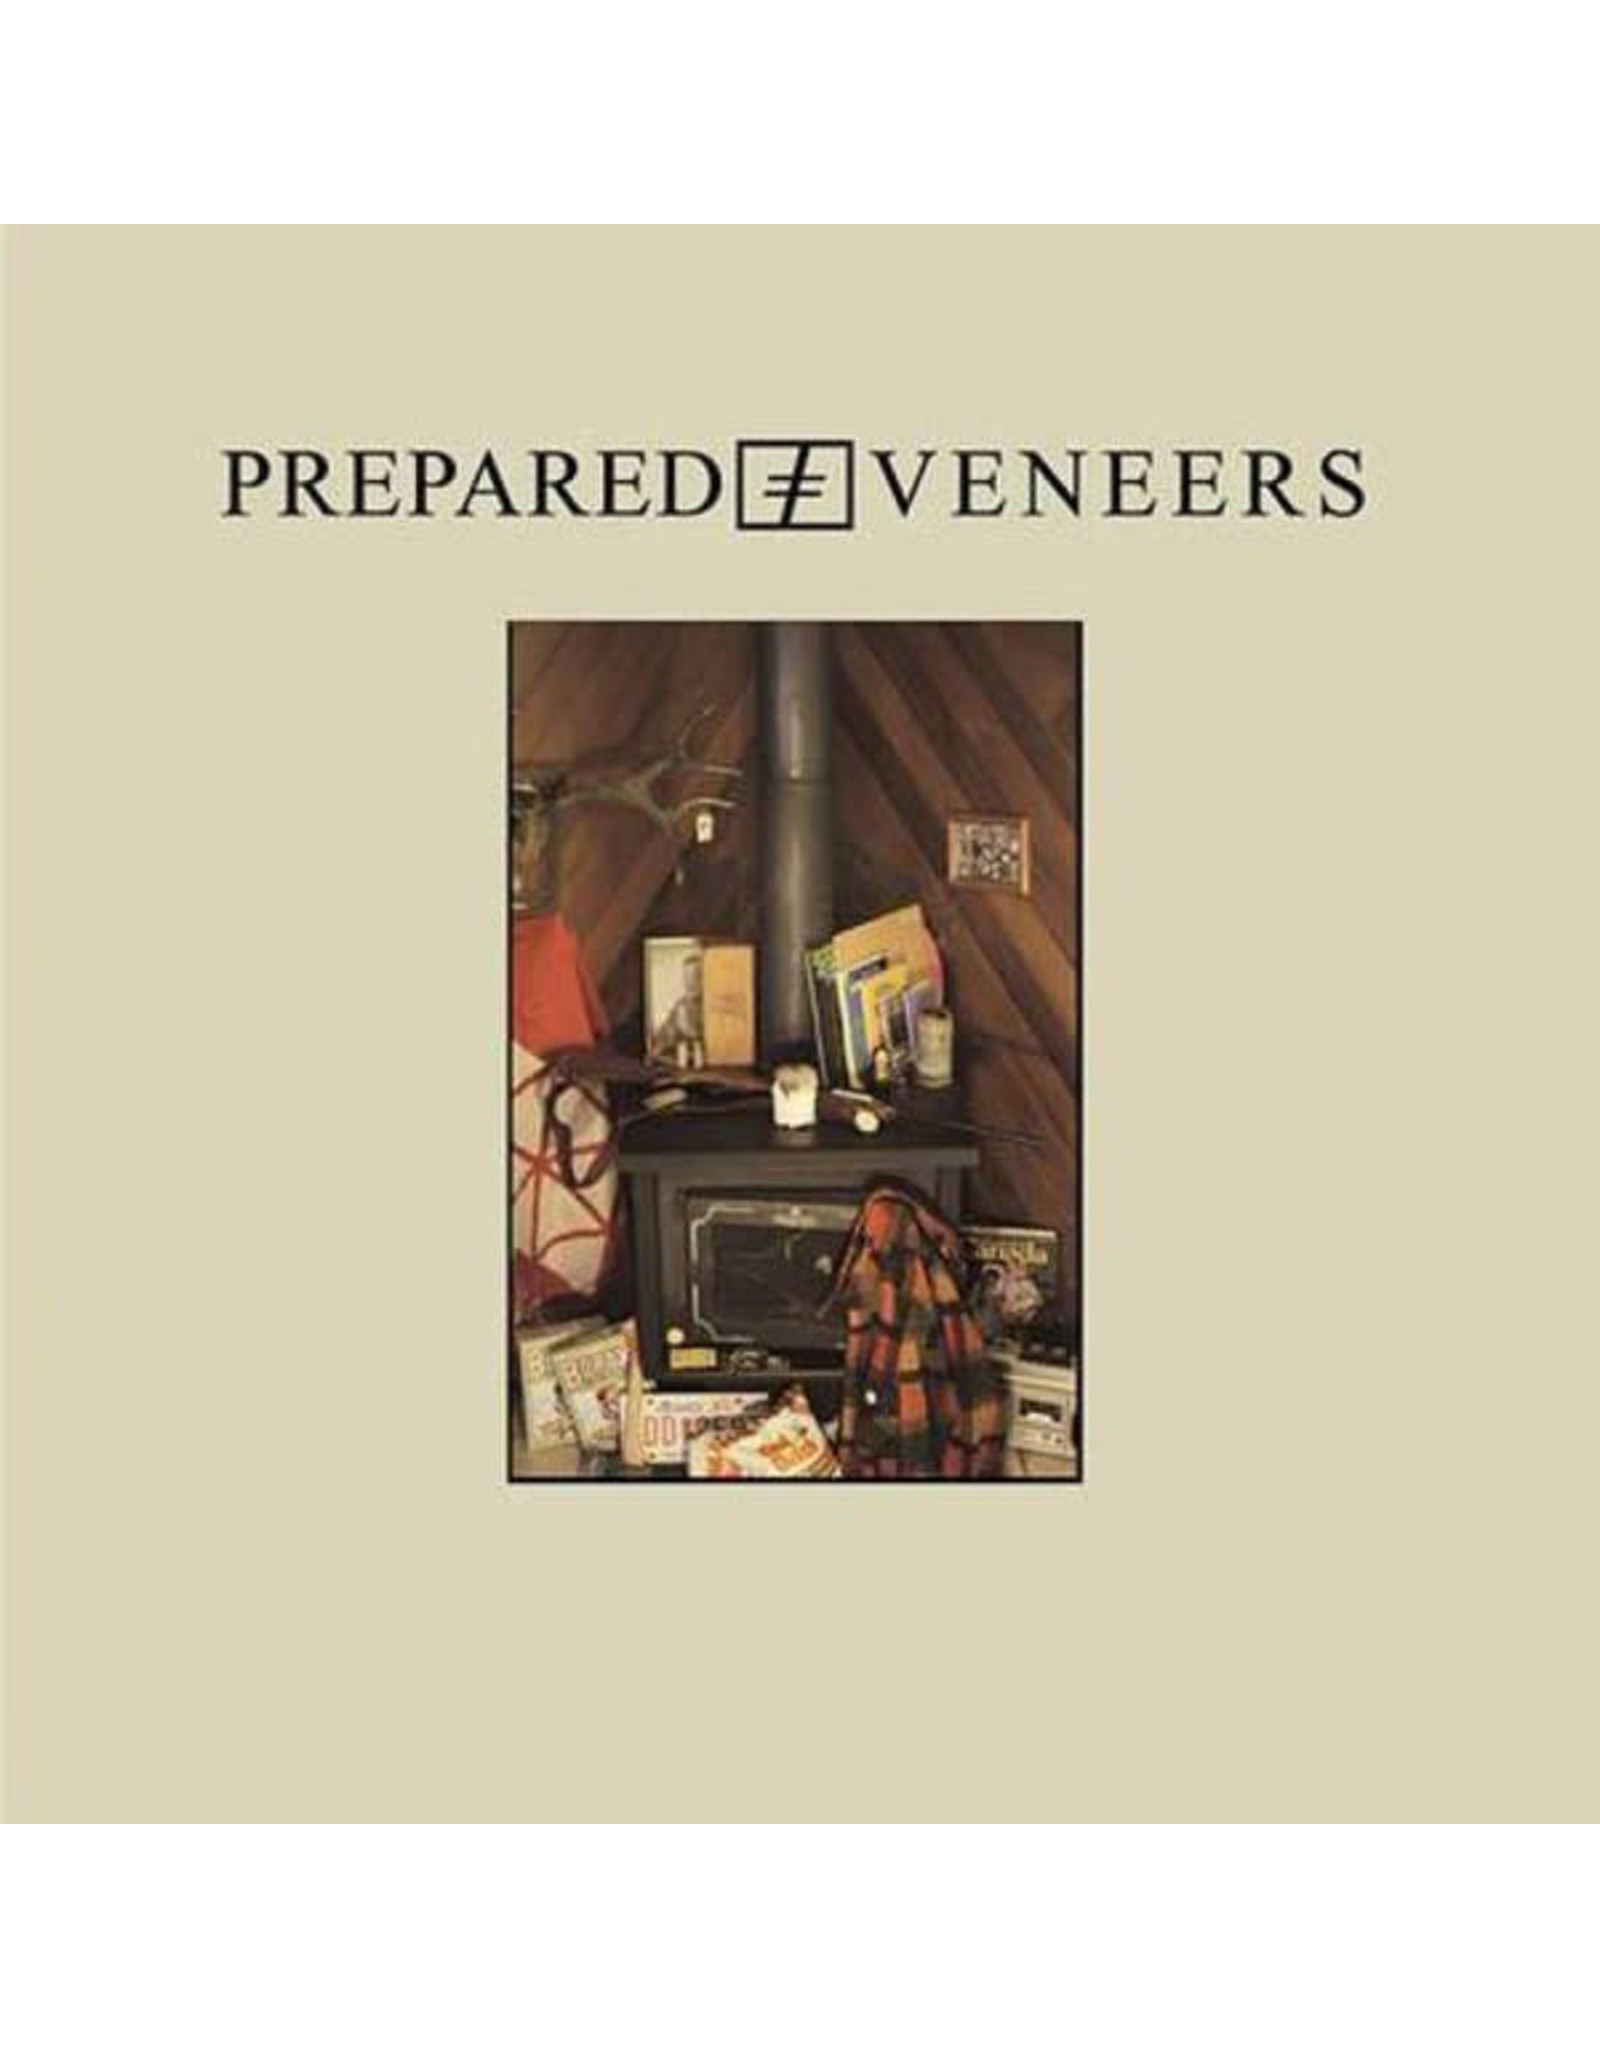 Prepared ≠ Veneers Split 7""